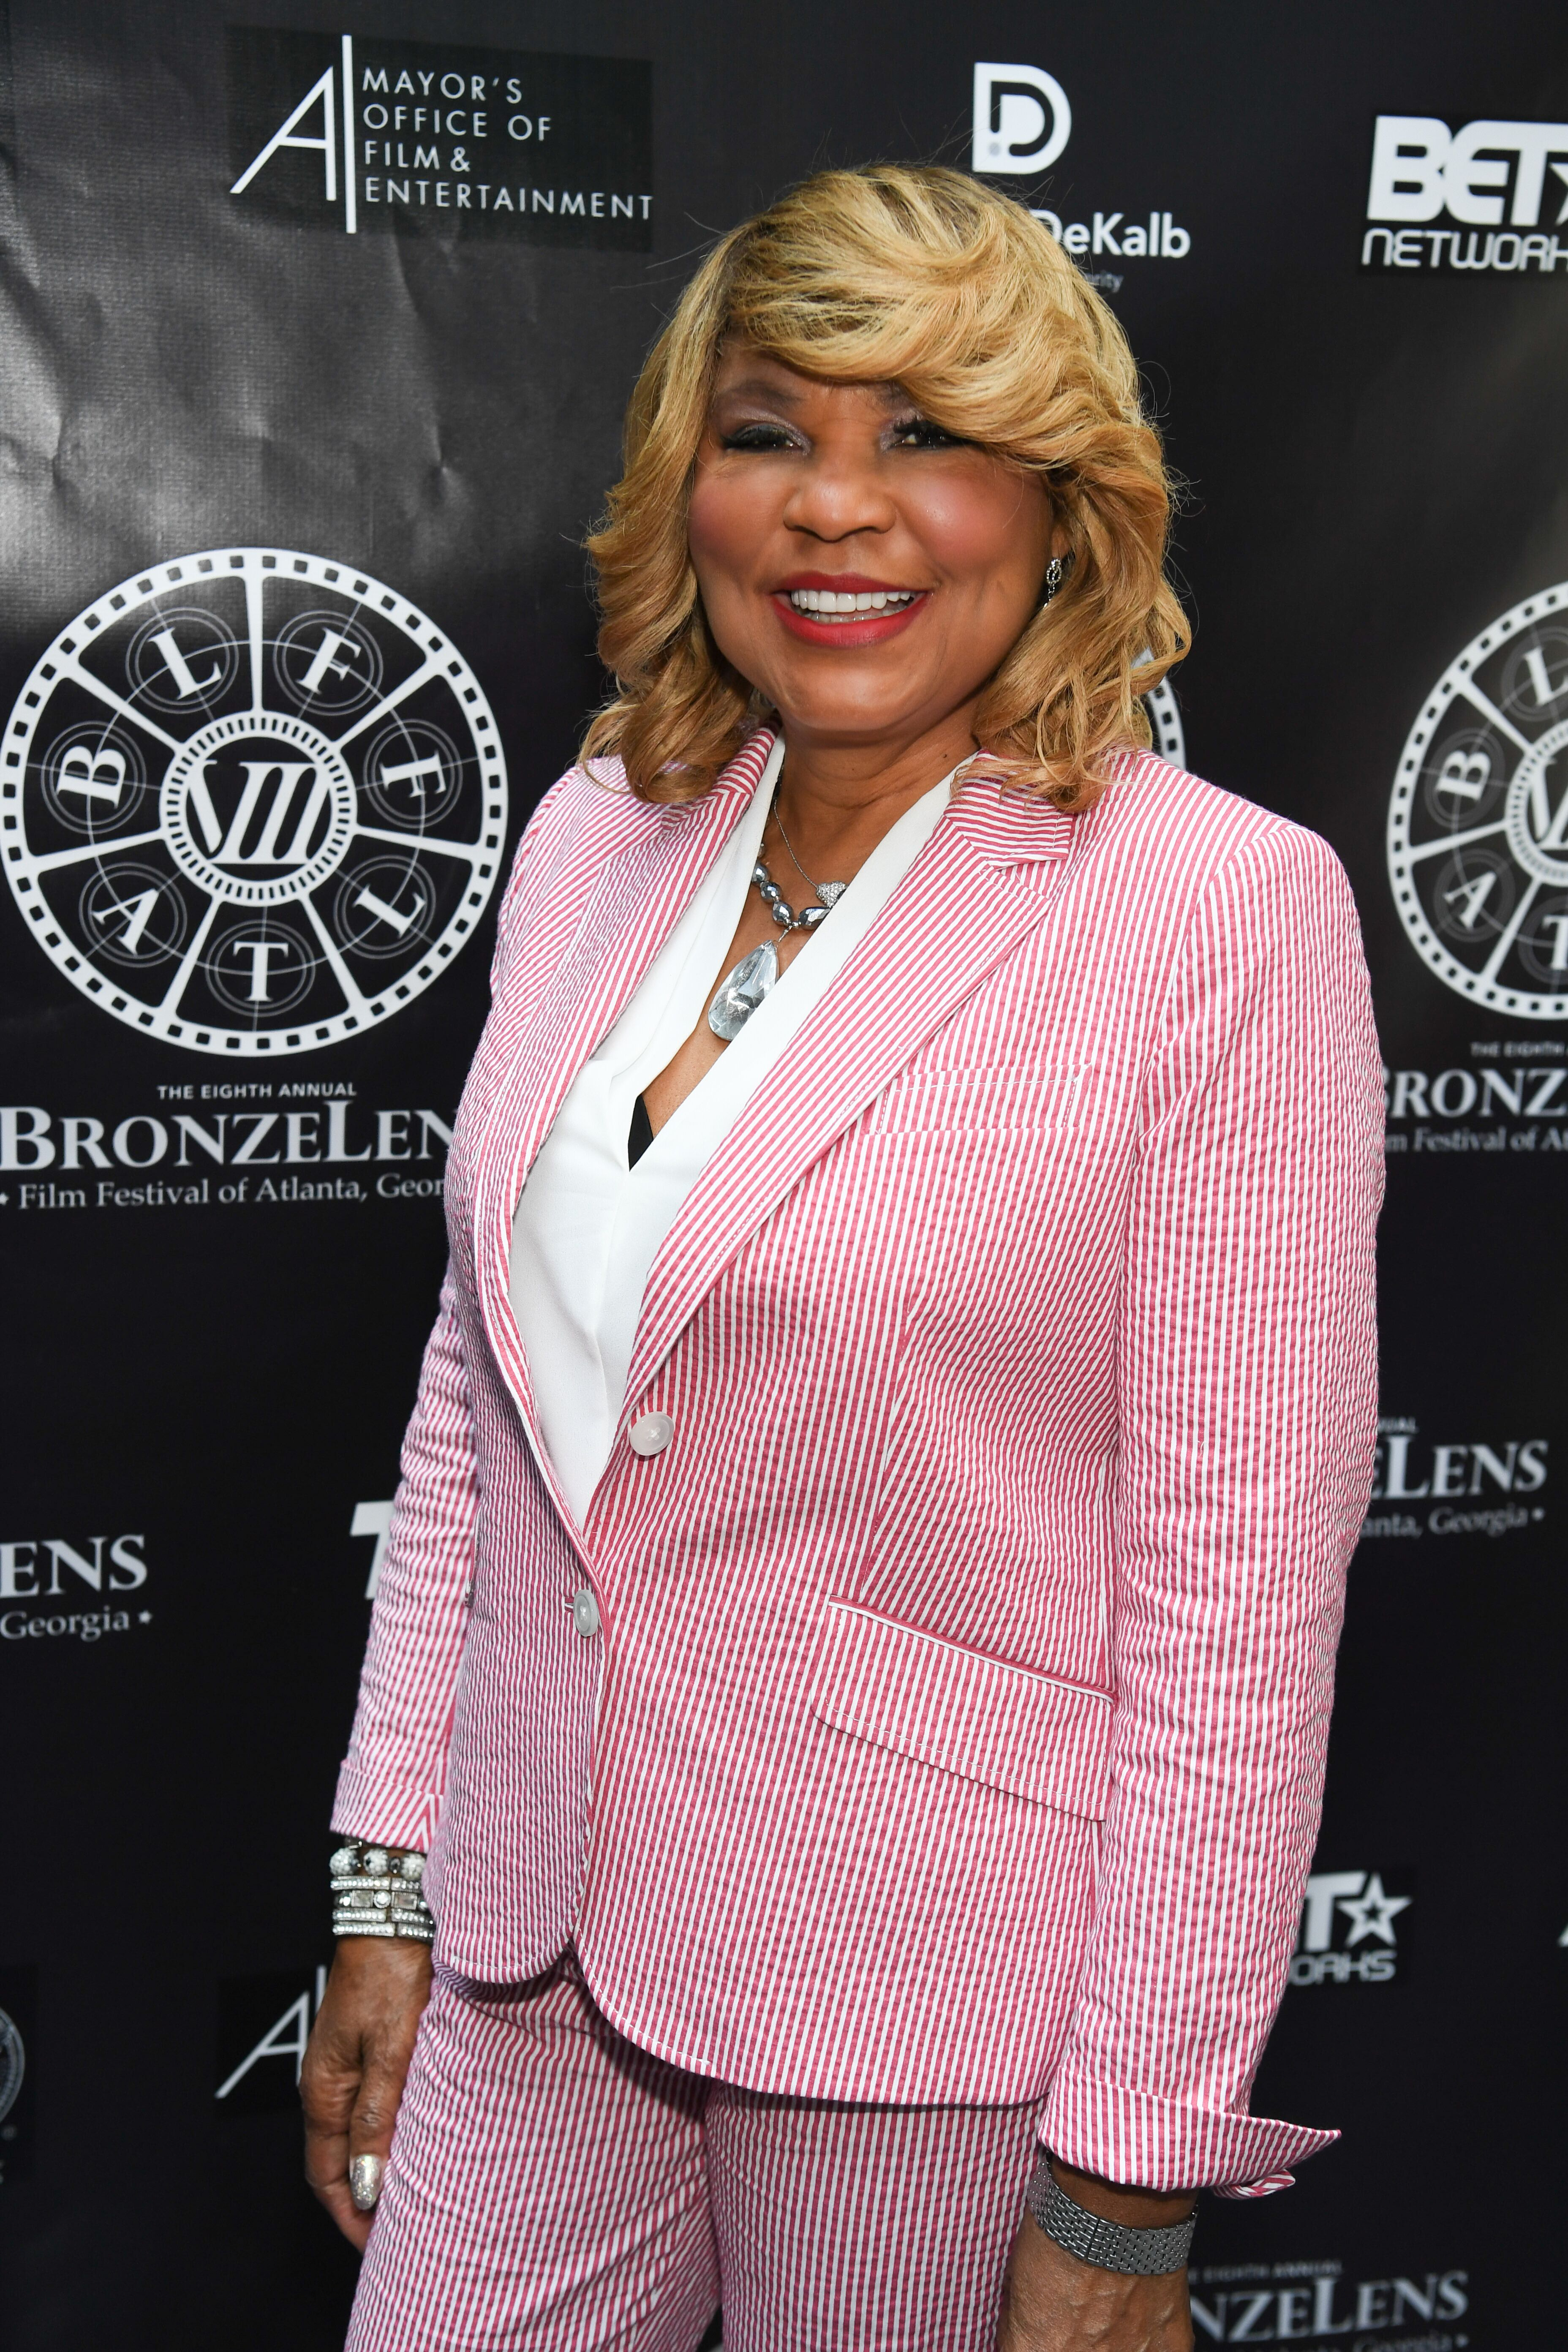 Evelyn Braxton at the 2017 BronzeLens Women SuperStars Luncheon in Atlanta Georgia/ Source: Getty Images